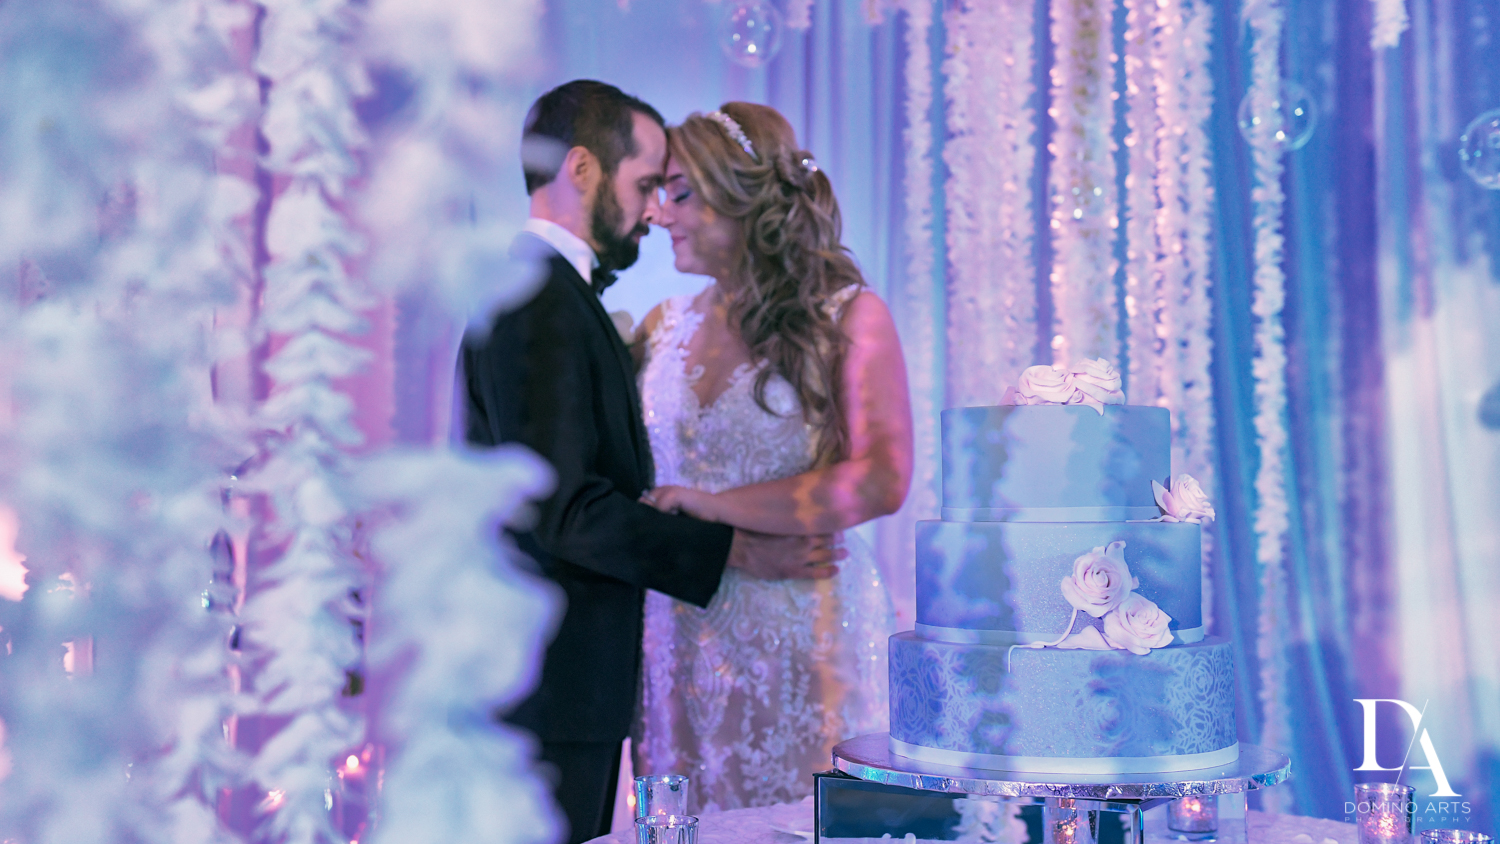 romantic cake picture at Ultimate Events Wedding at Turnberry Isle Resort Miami by Domino Arts Photography